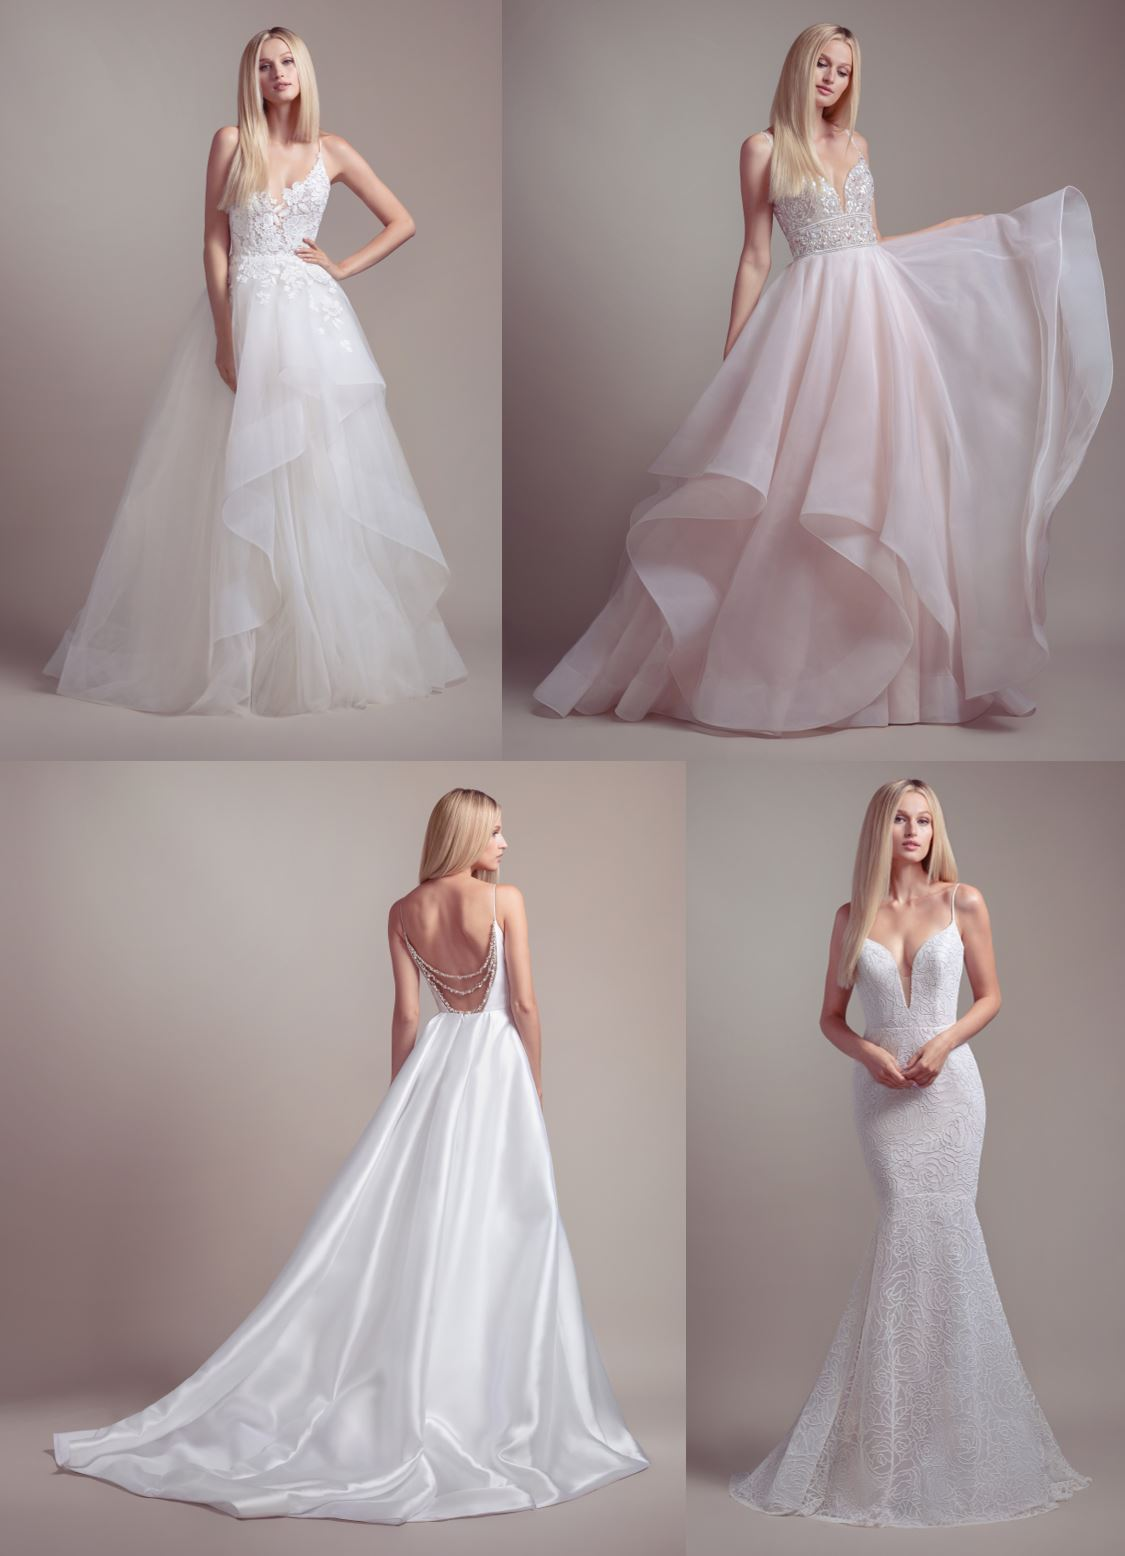 Blush by Hayley Paige Bridal Trunk Show from July 12th to 13th at Lotus Bridal Long Island, NY - Wedding Dresses Include Clover, Fawn, Soleil, Vanna, Finch, Jameson